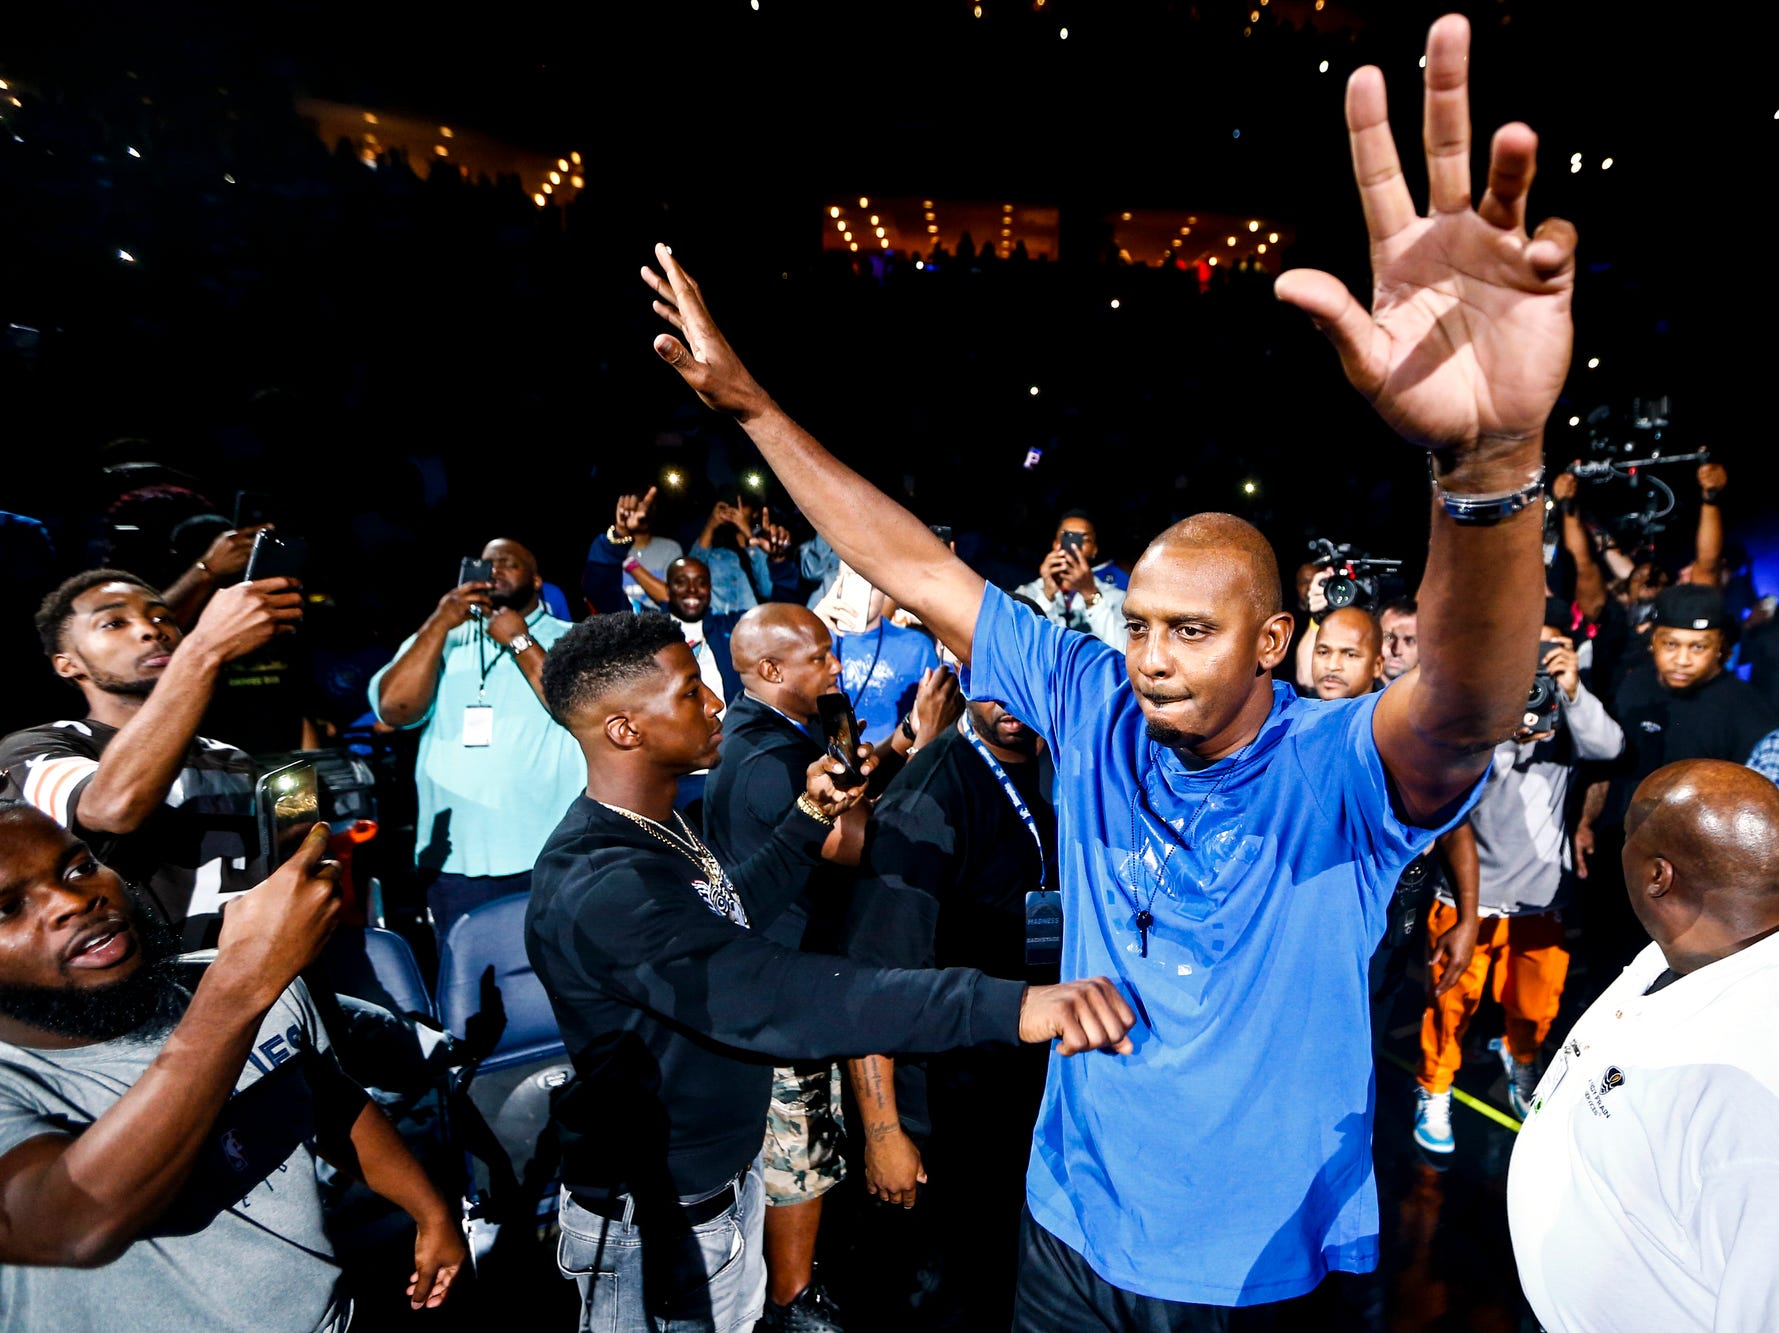 October 04 2018 - Penny Hardaway is seen Memphis Madness at the FedExForum on Thursday, Oct. 4, 2018.